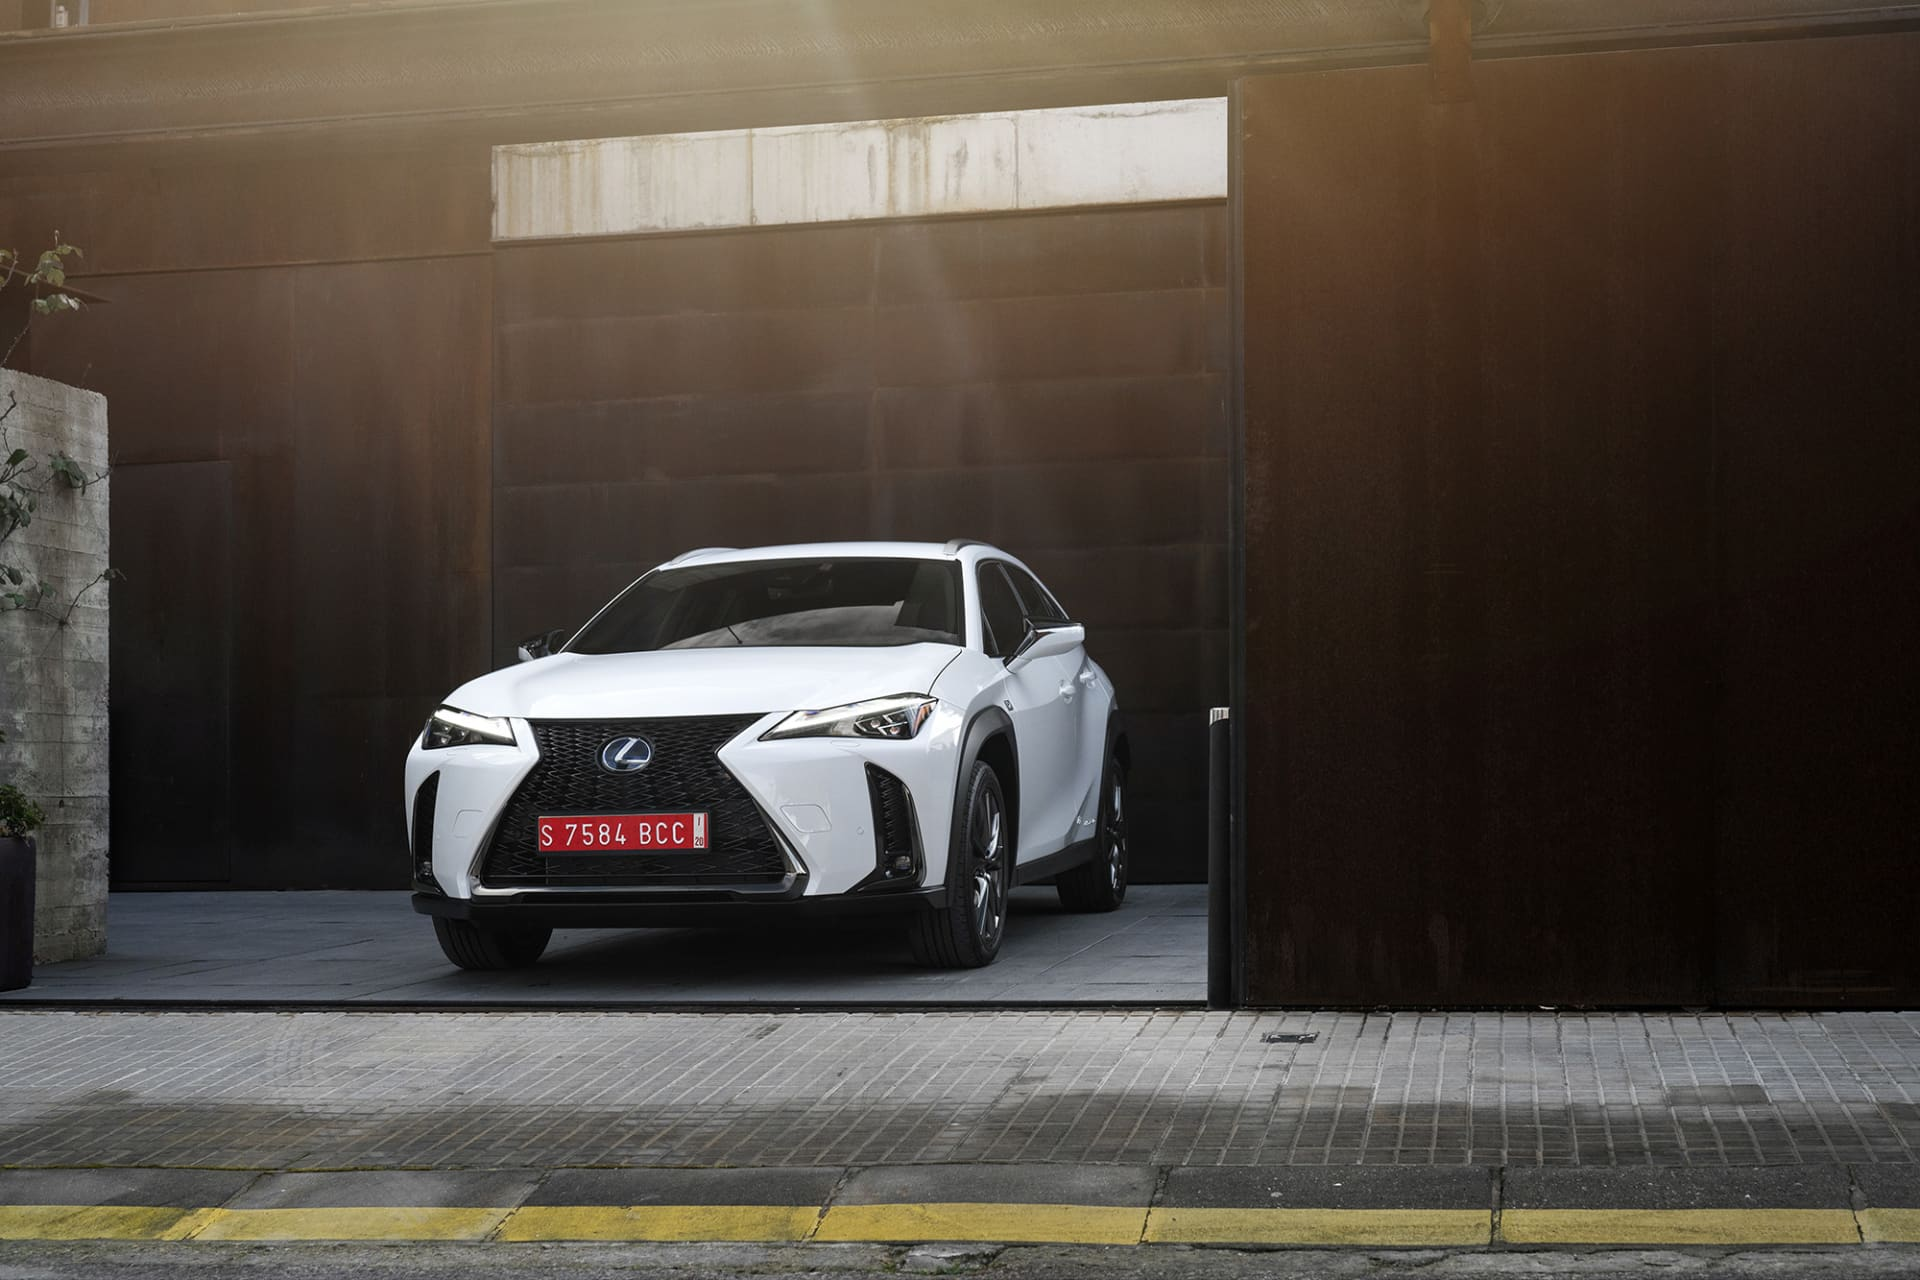 The design of the UV 250h stands out from the crowd but still follows other models in the Lexus family. It's easy to recognize it if you are used to the brand.